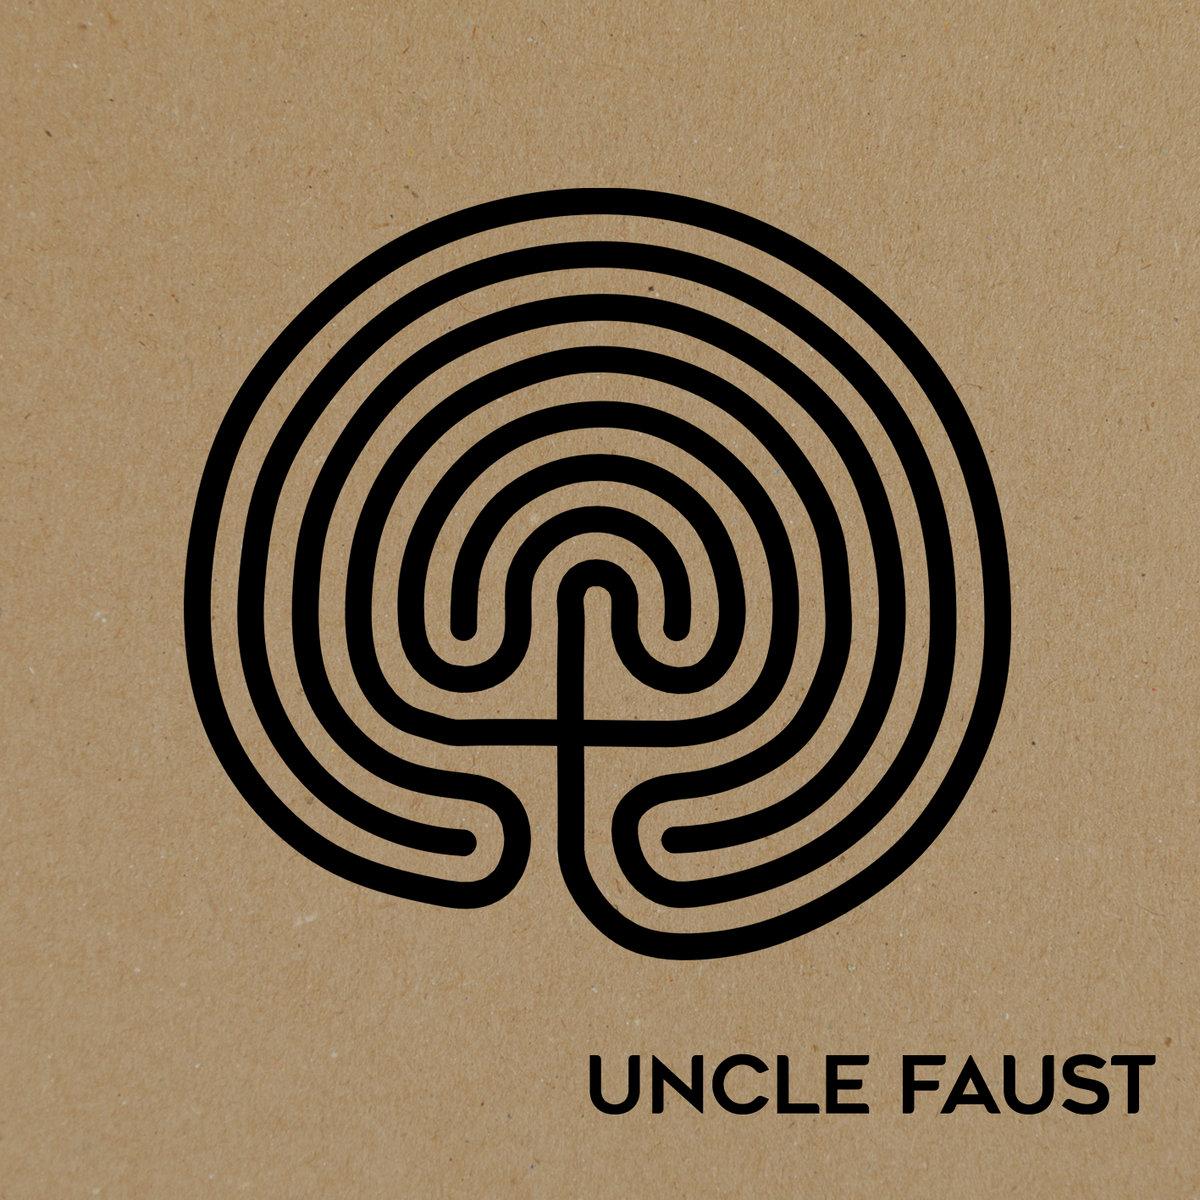 Uncle Faust